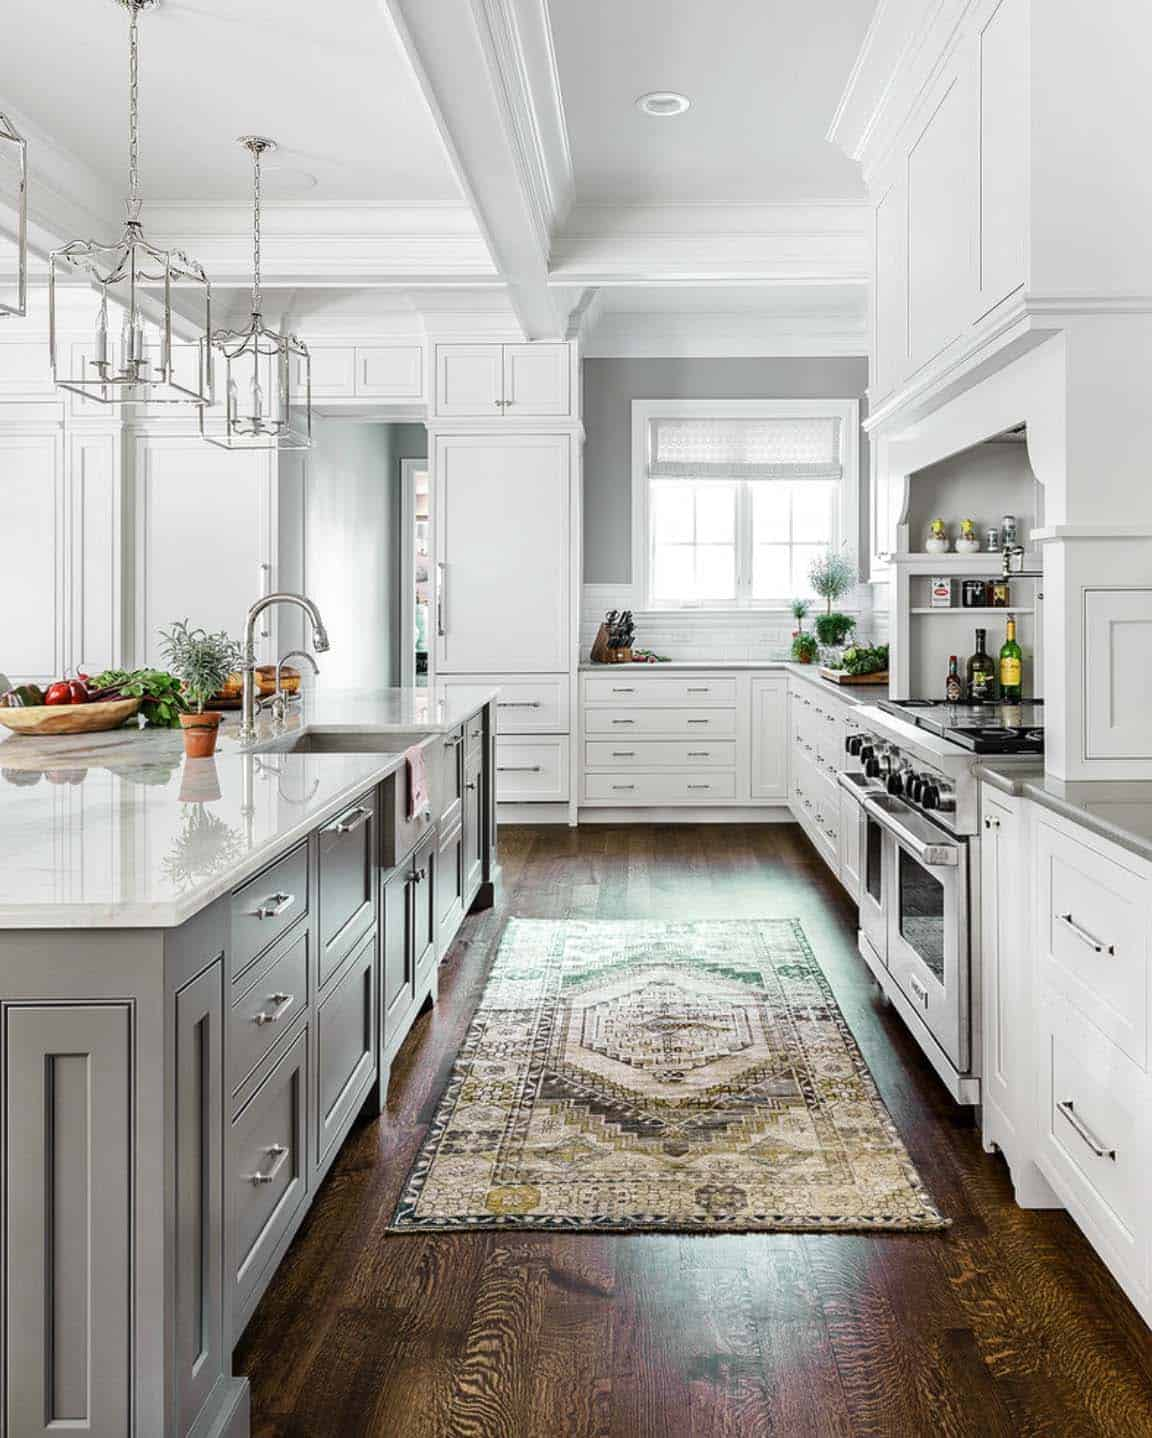 Remodel Kitchen With White Cabinets: 30+ Beautiful And Inspiring Light-filled Kitchens With